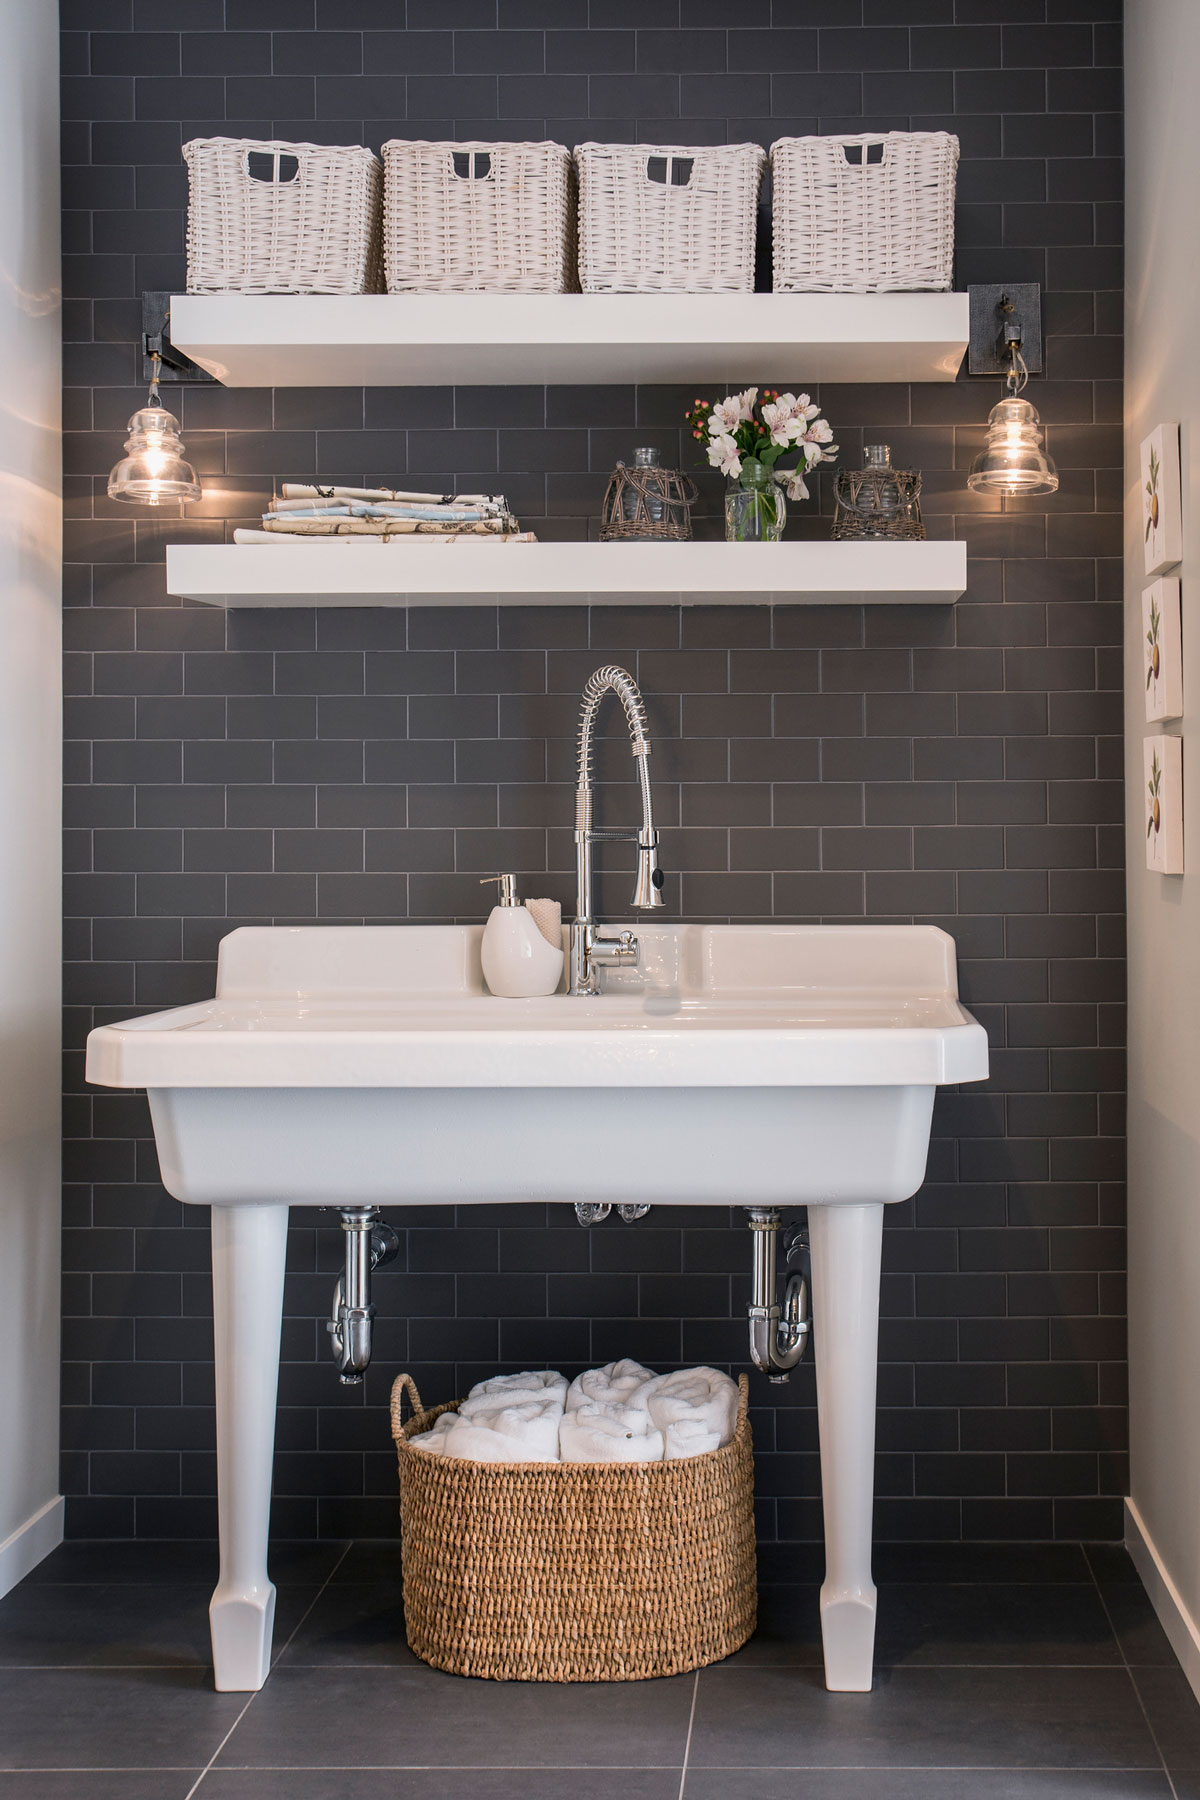 Bathroom shelf ideas, open shelving - Open shelving over sink